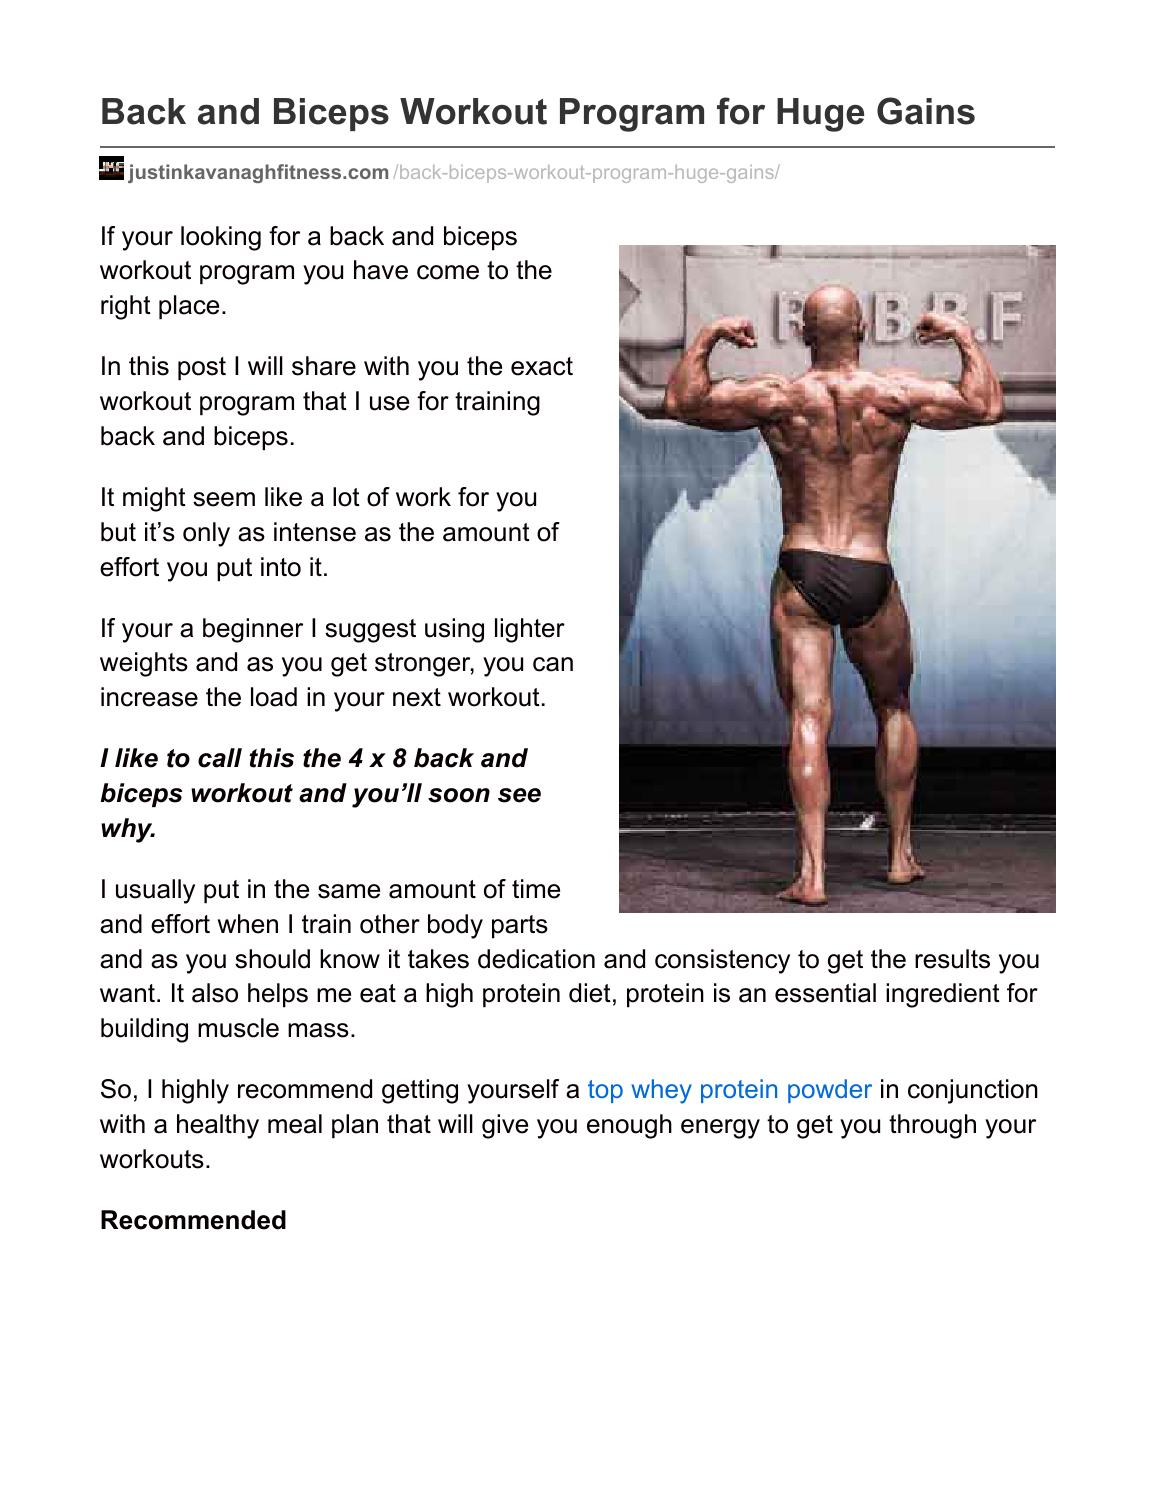 Back and biceps workout program for huge gains by Justin